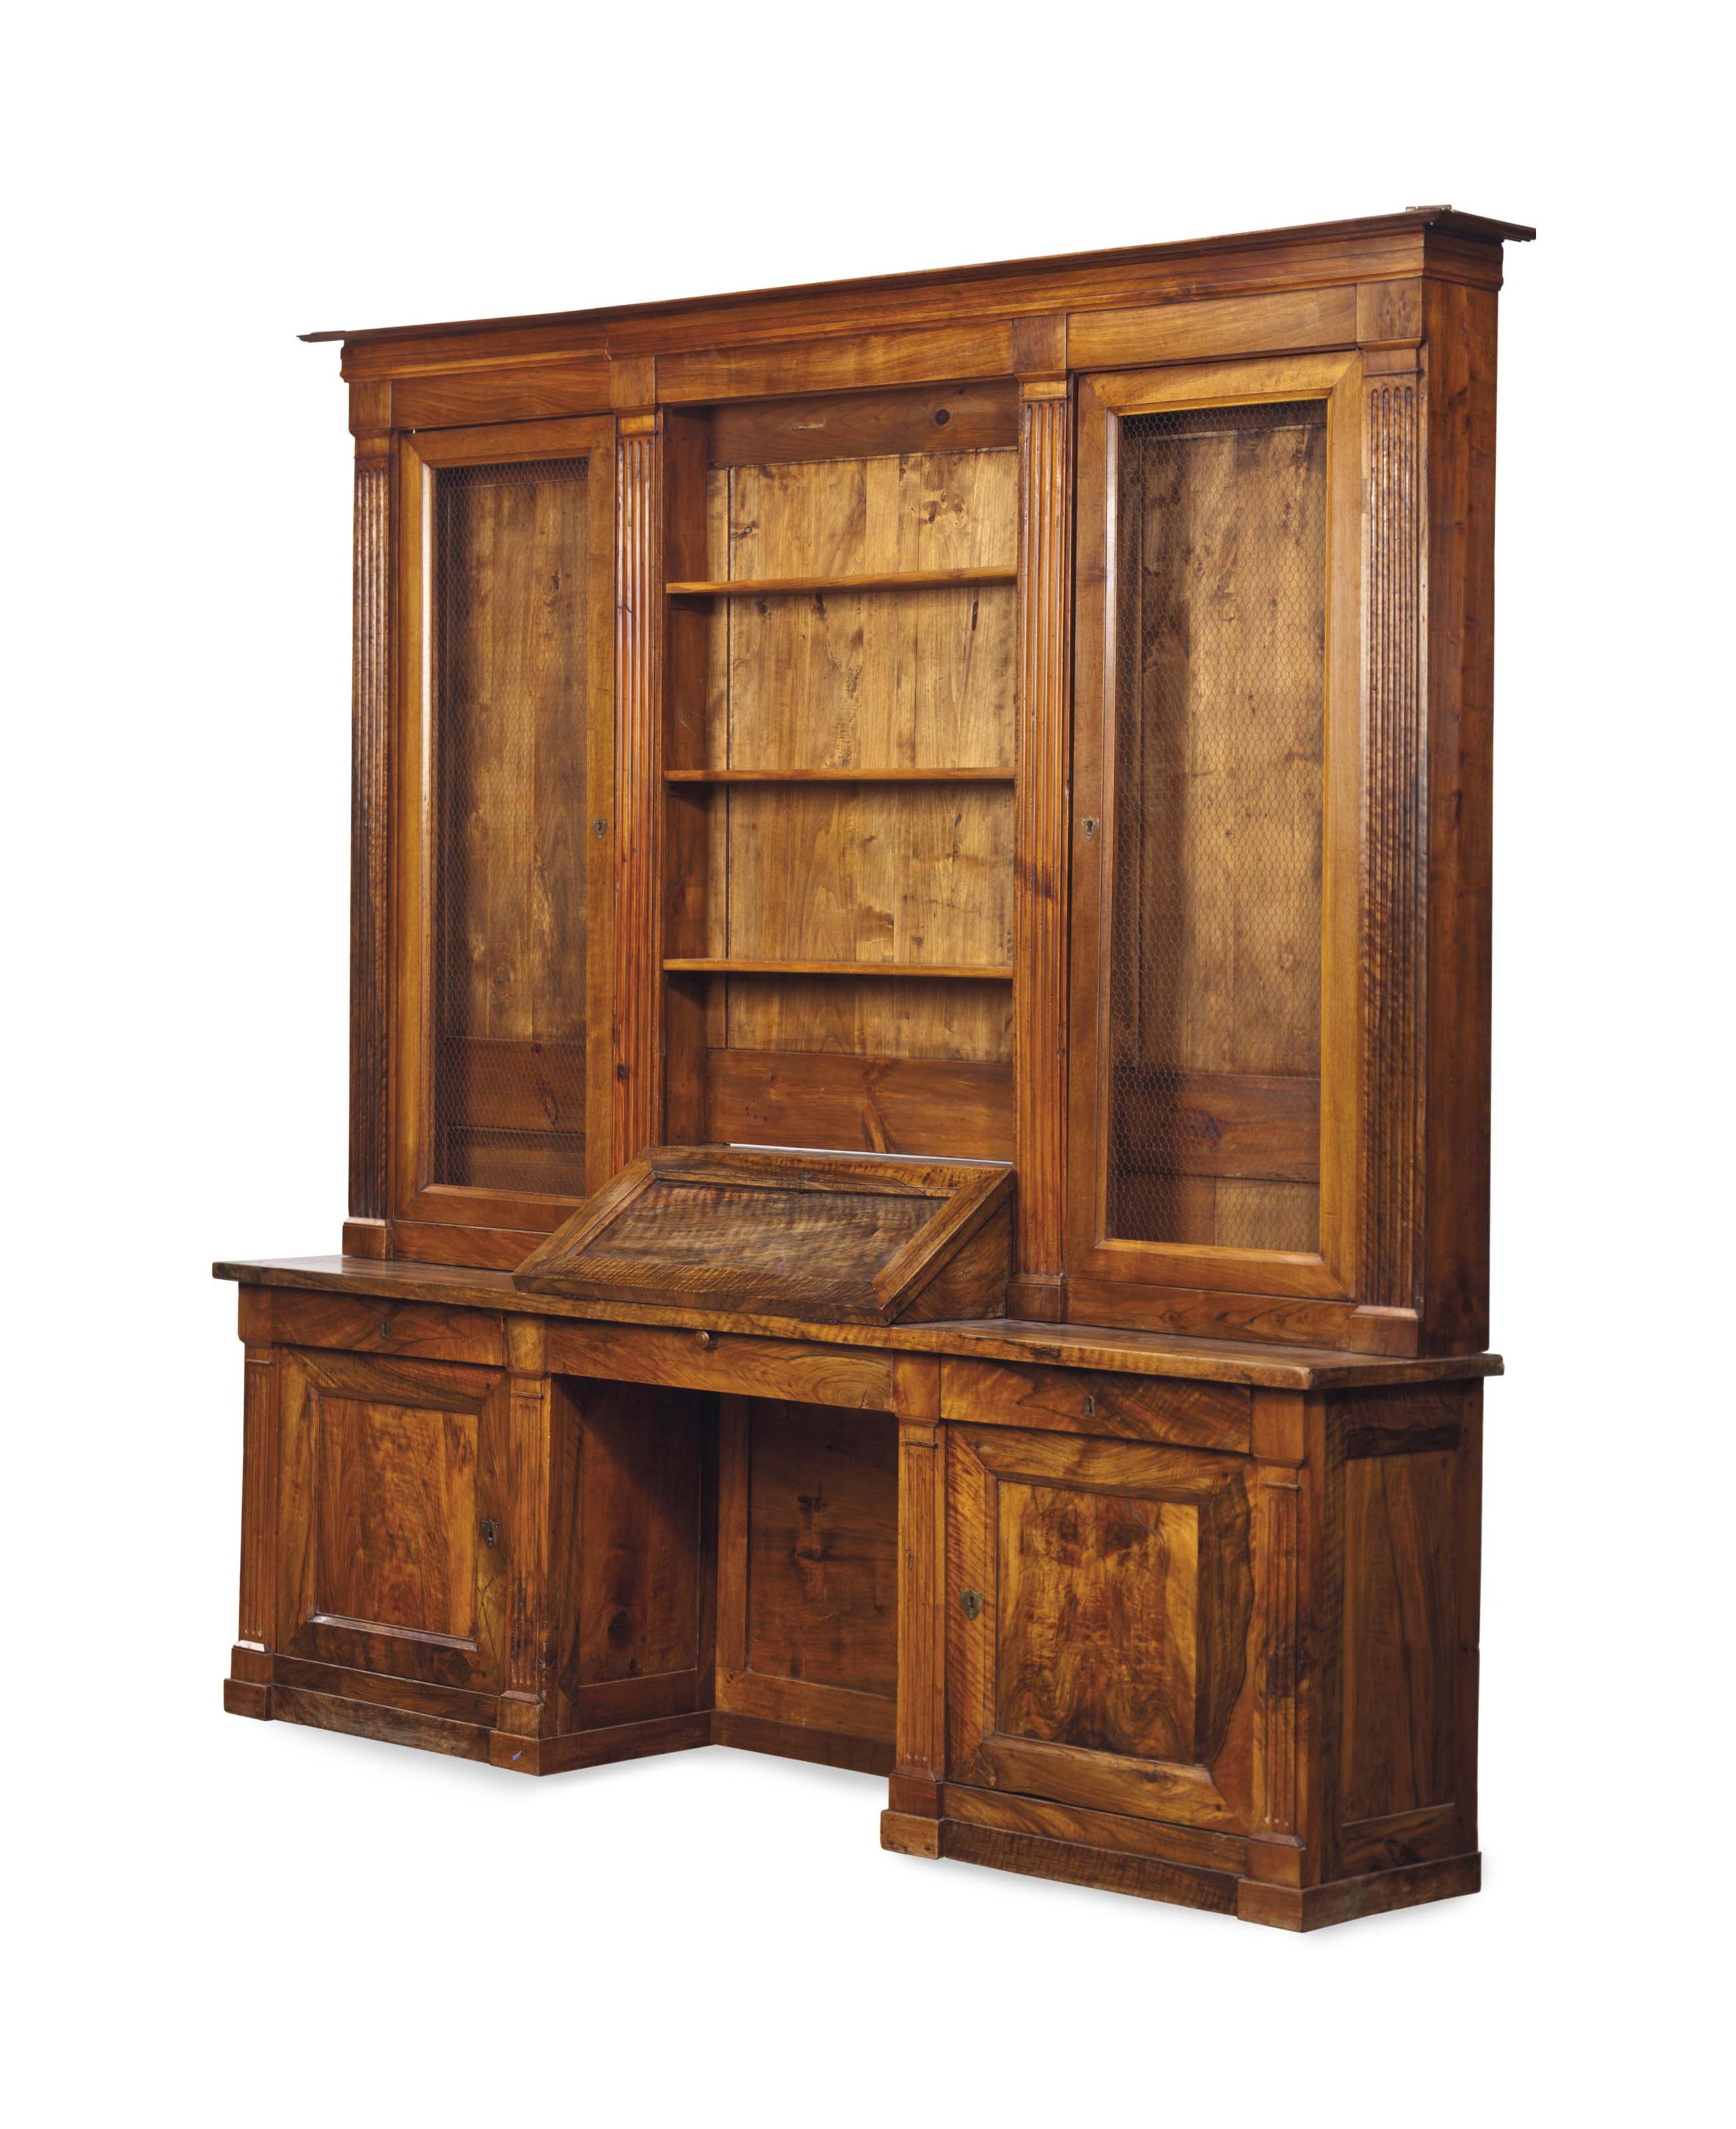 A FRENCH OLIVEWOOD AND WALNUT SECRETAIRE BOOKCASE,